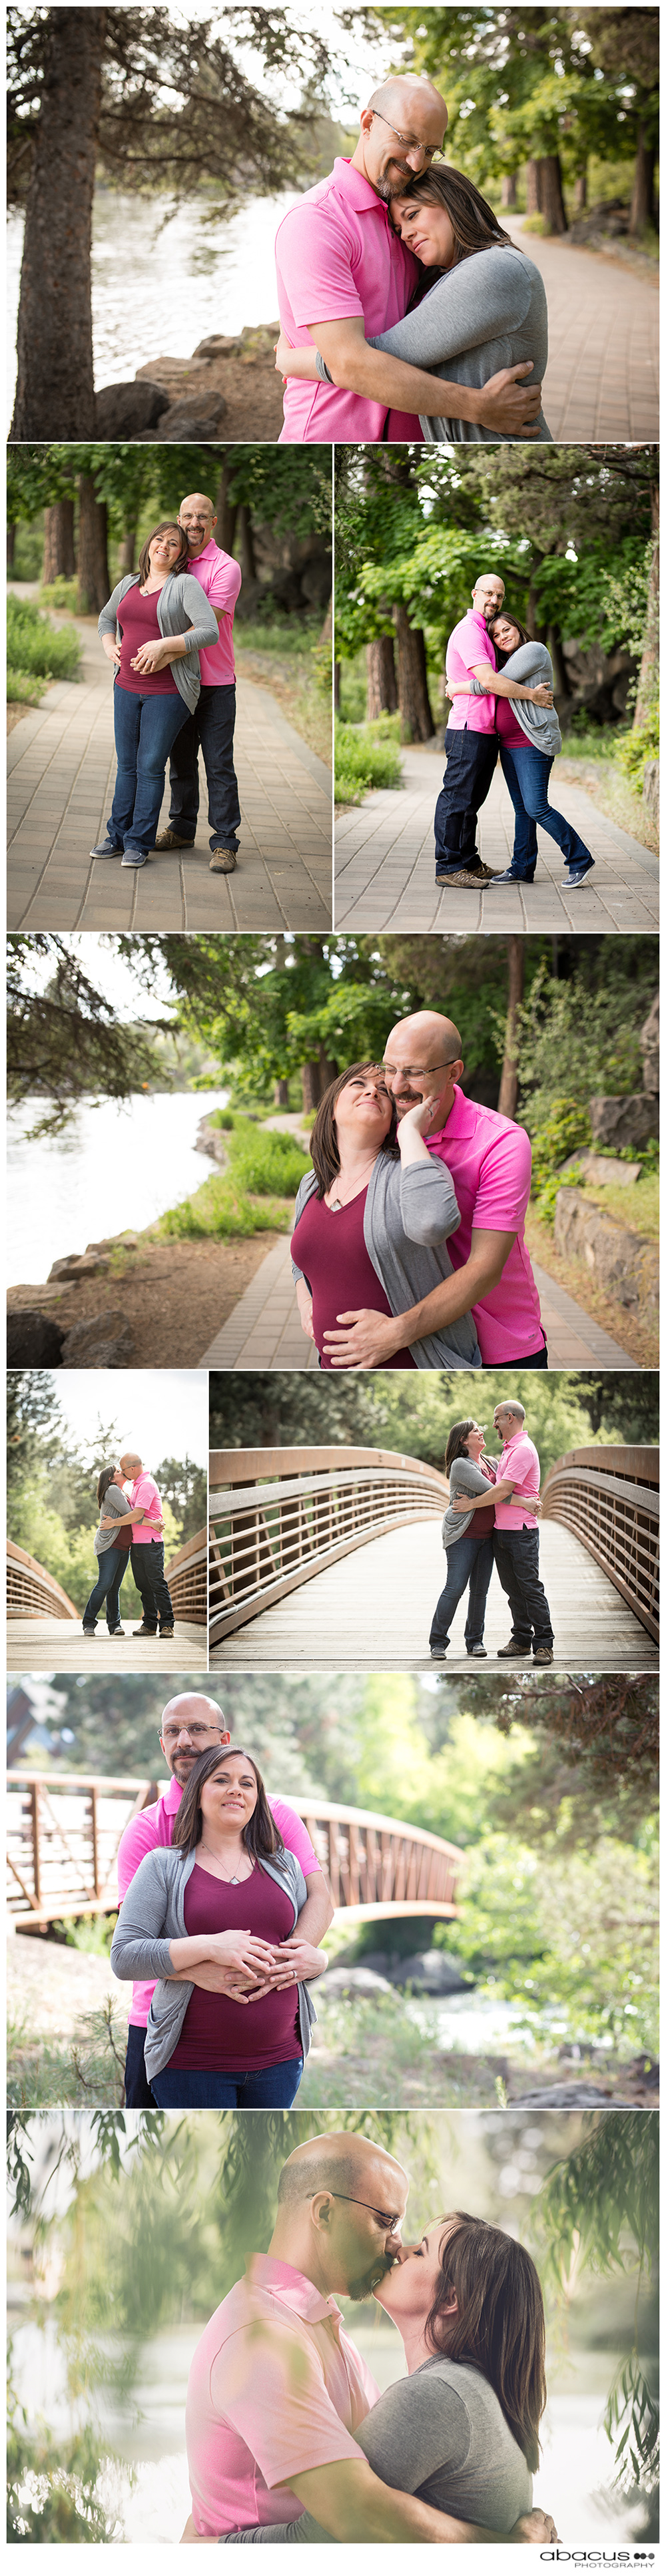 CENTRAL OREGON WEDDING PHOTOGRAPHY ENGAGEMENT